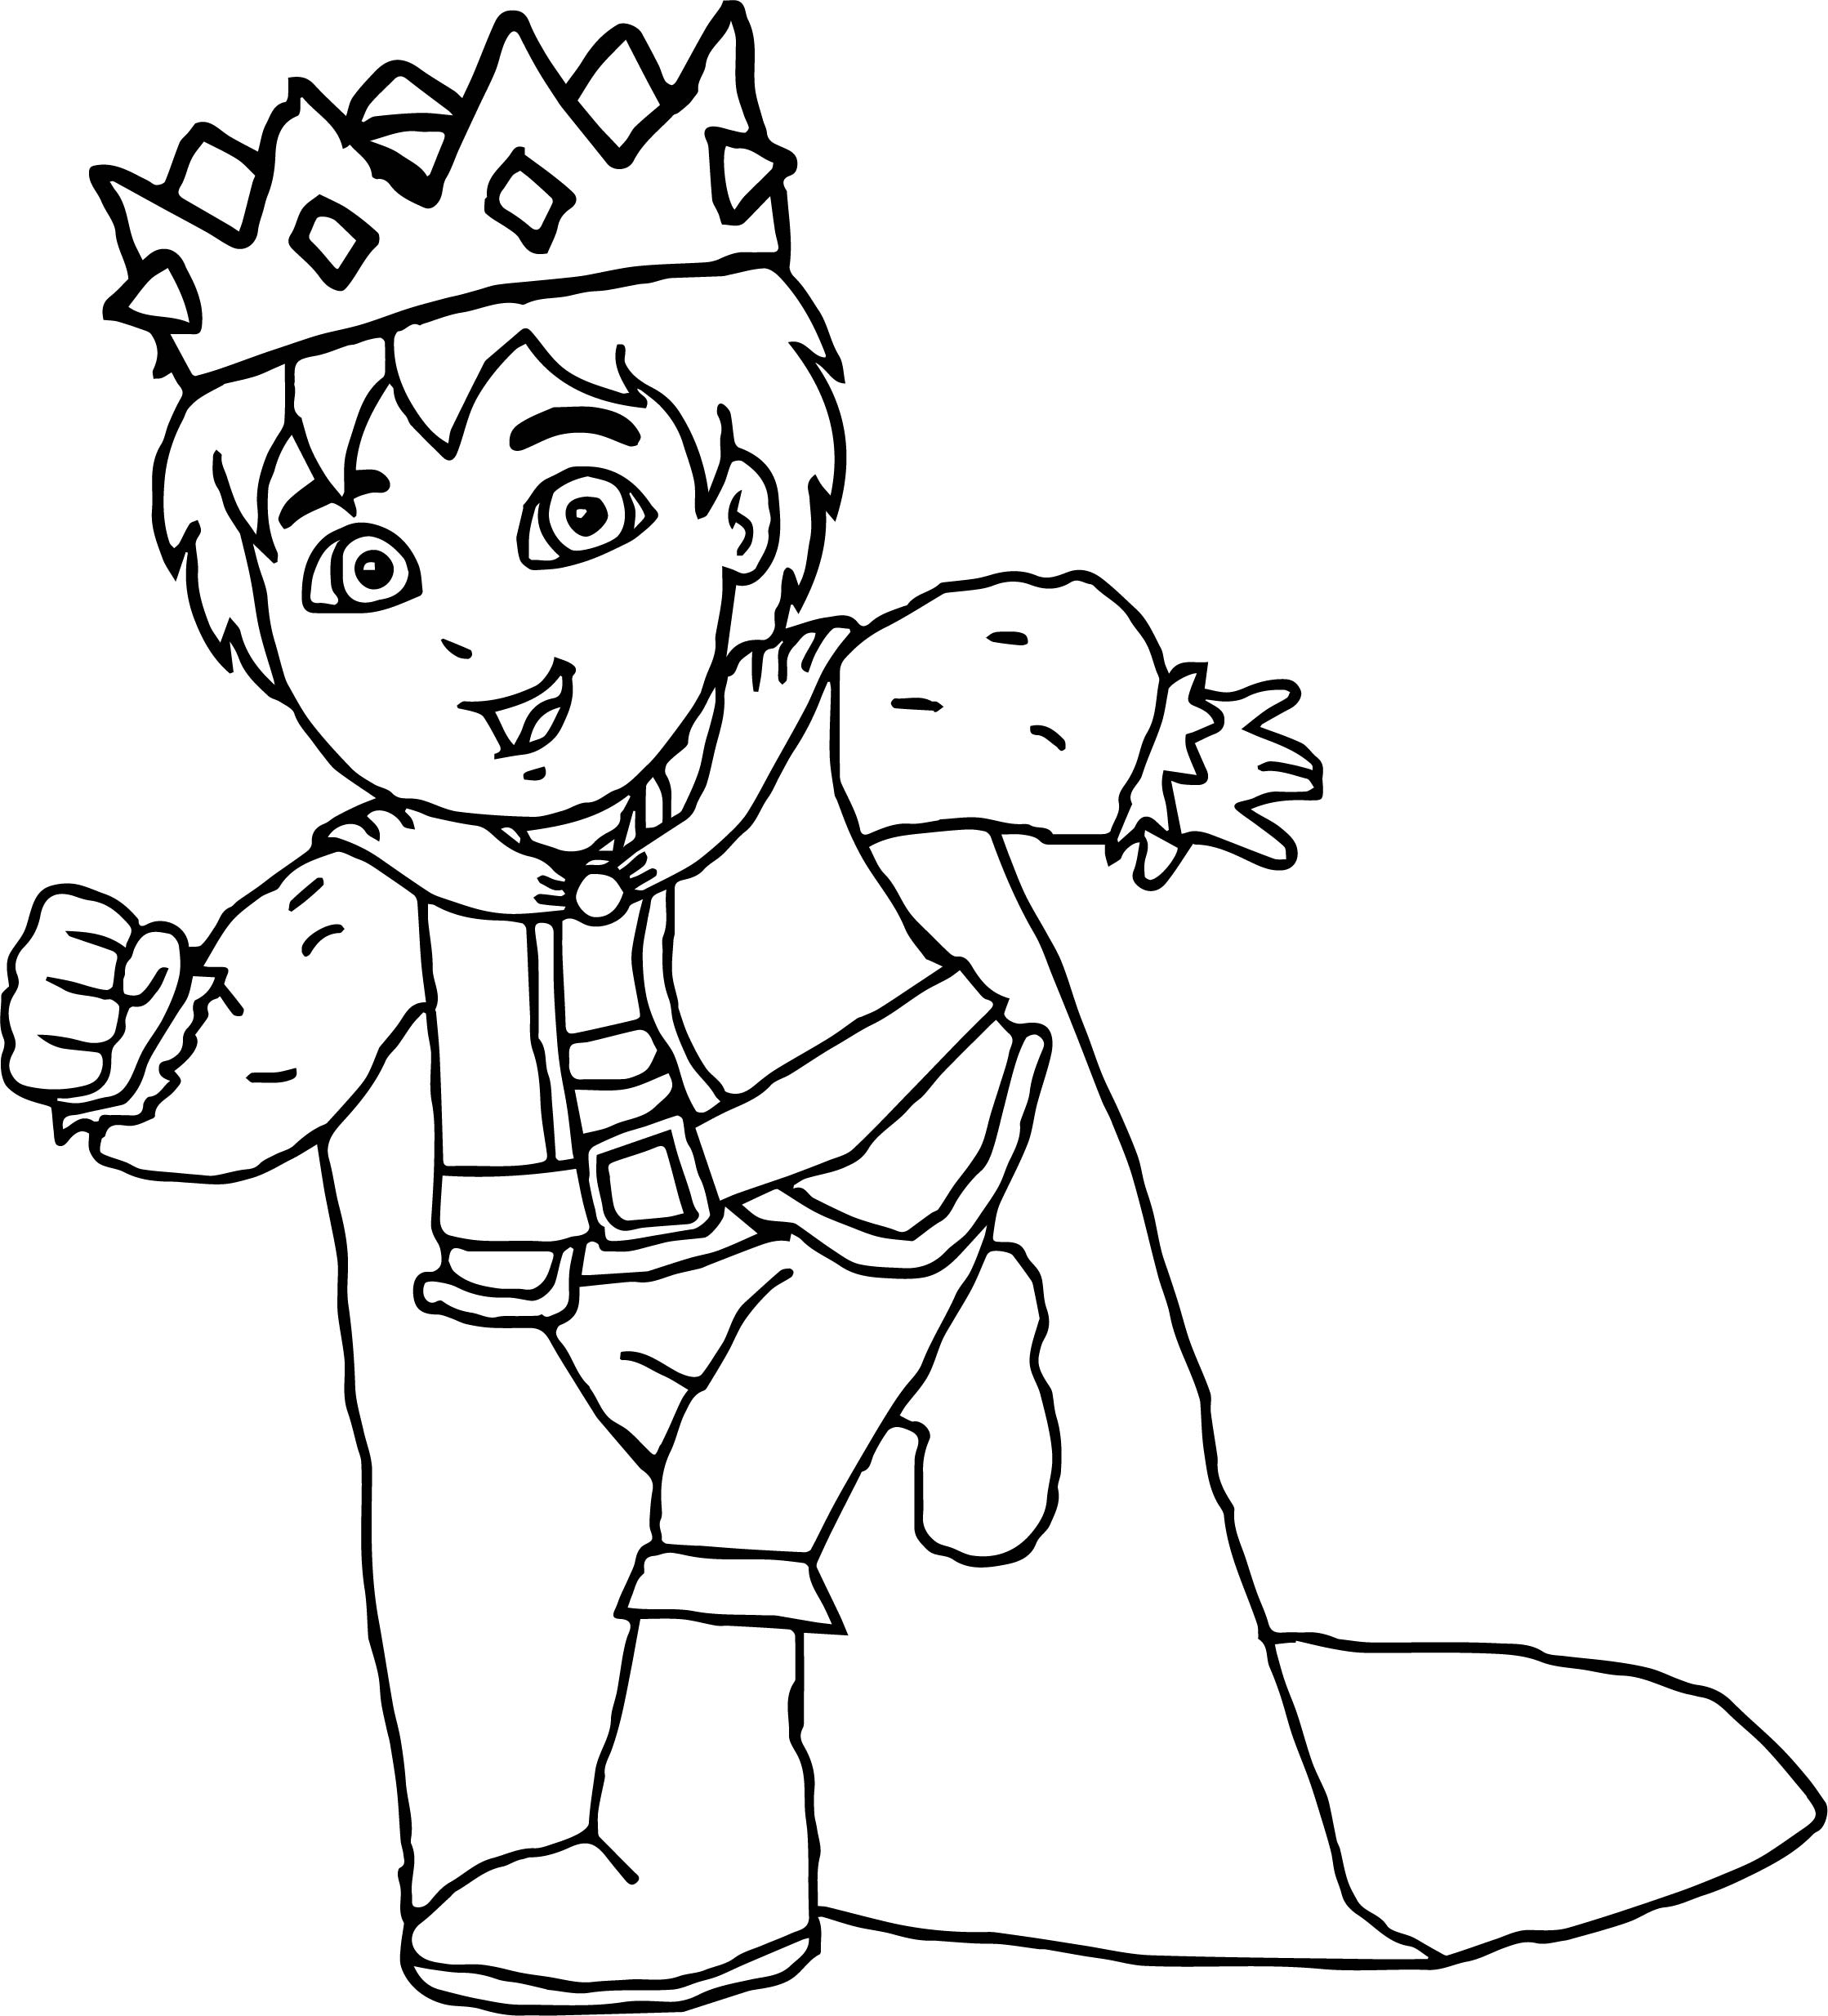 diego coloring pages top 10 free printable diego coloring pages online diego coloring pages